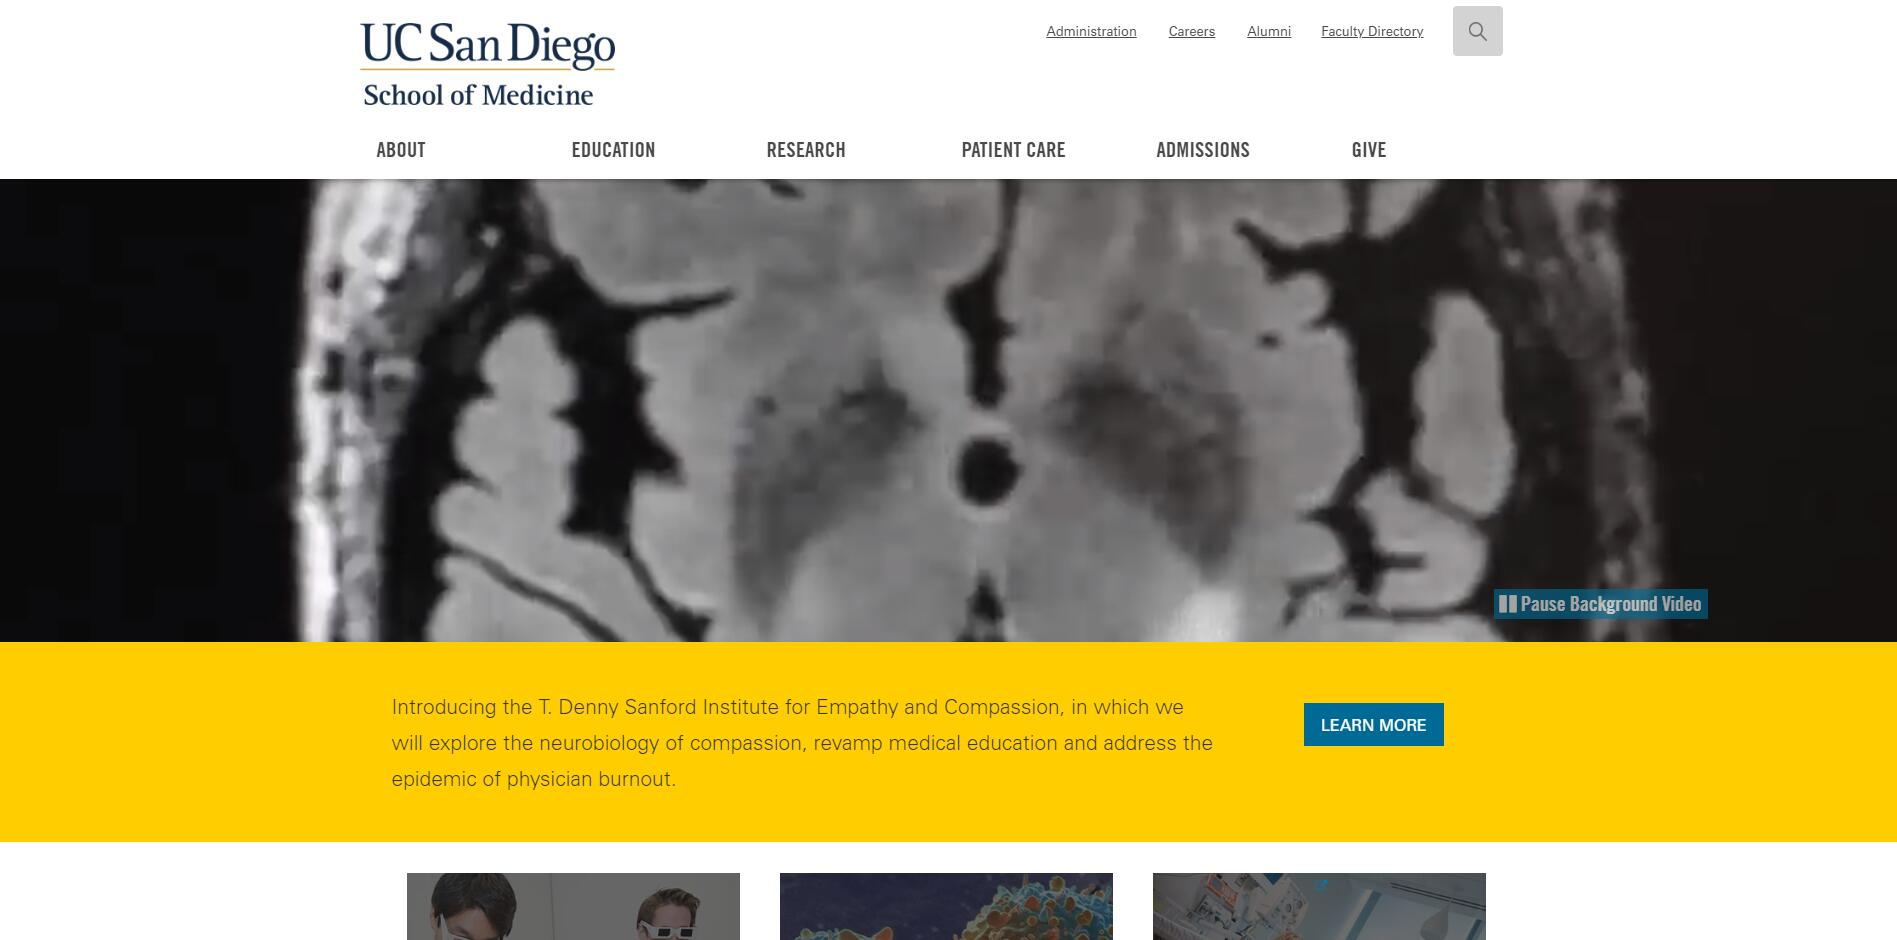 The School of Medicine at University of California--San Diego